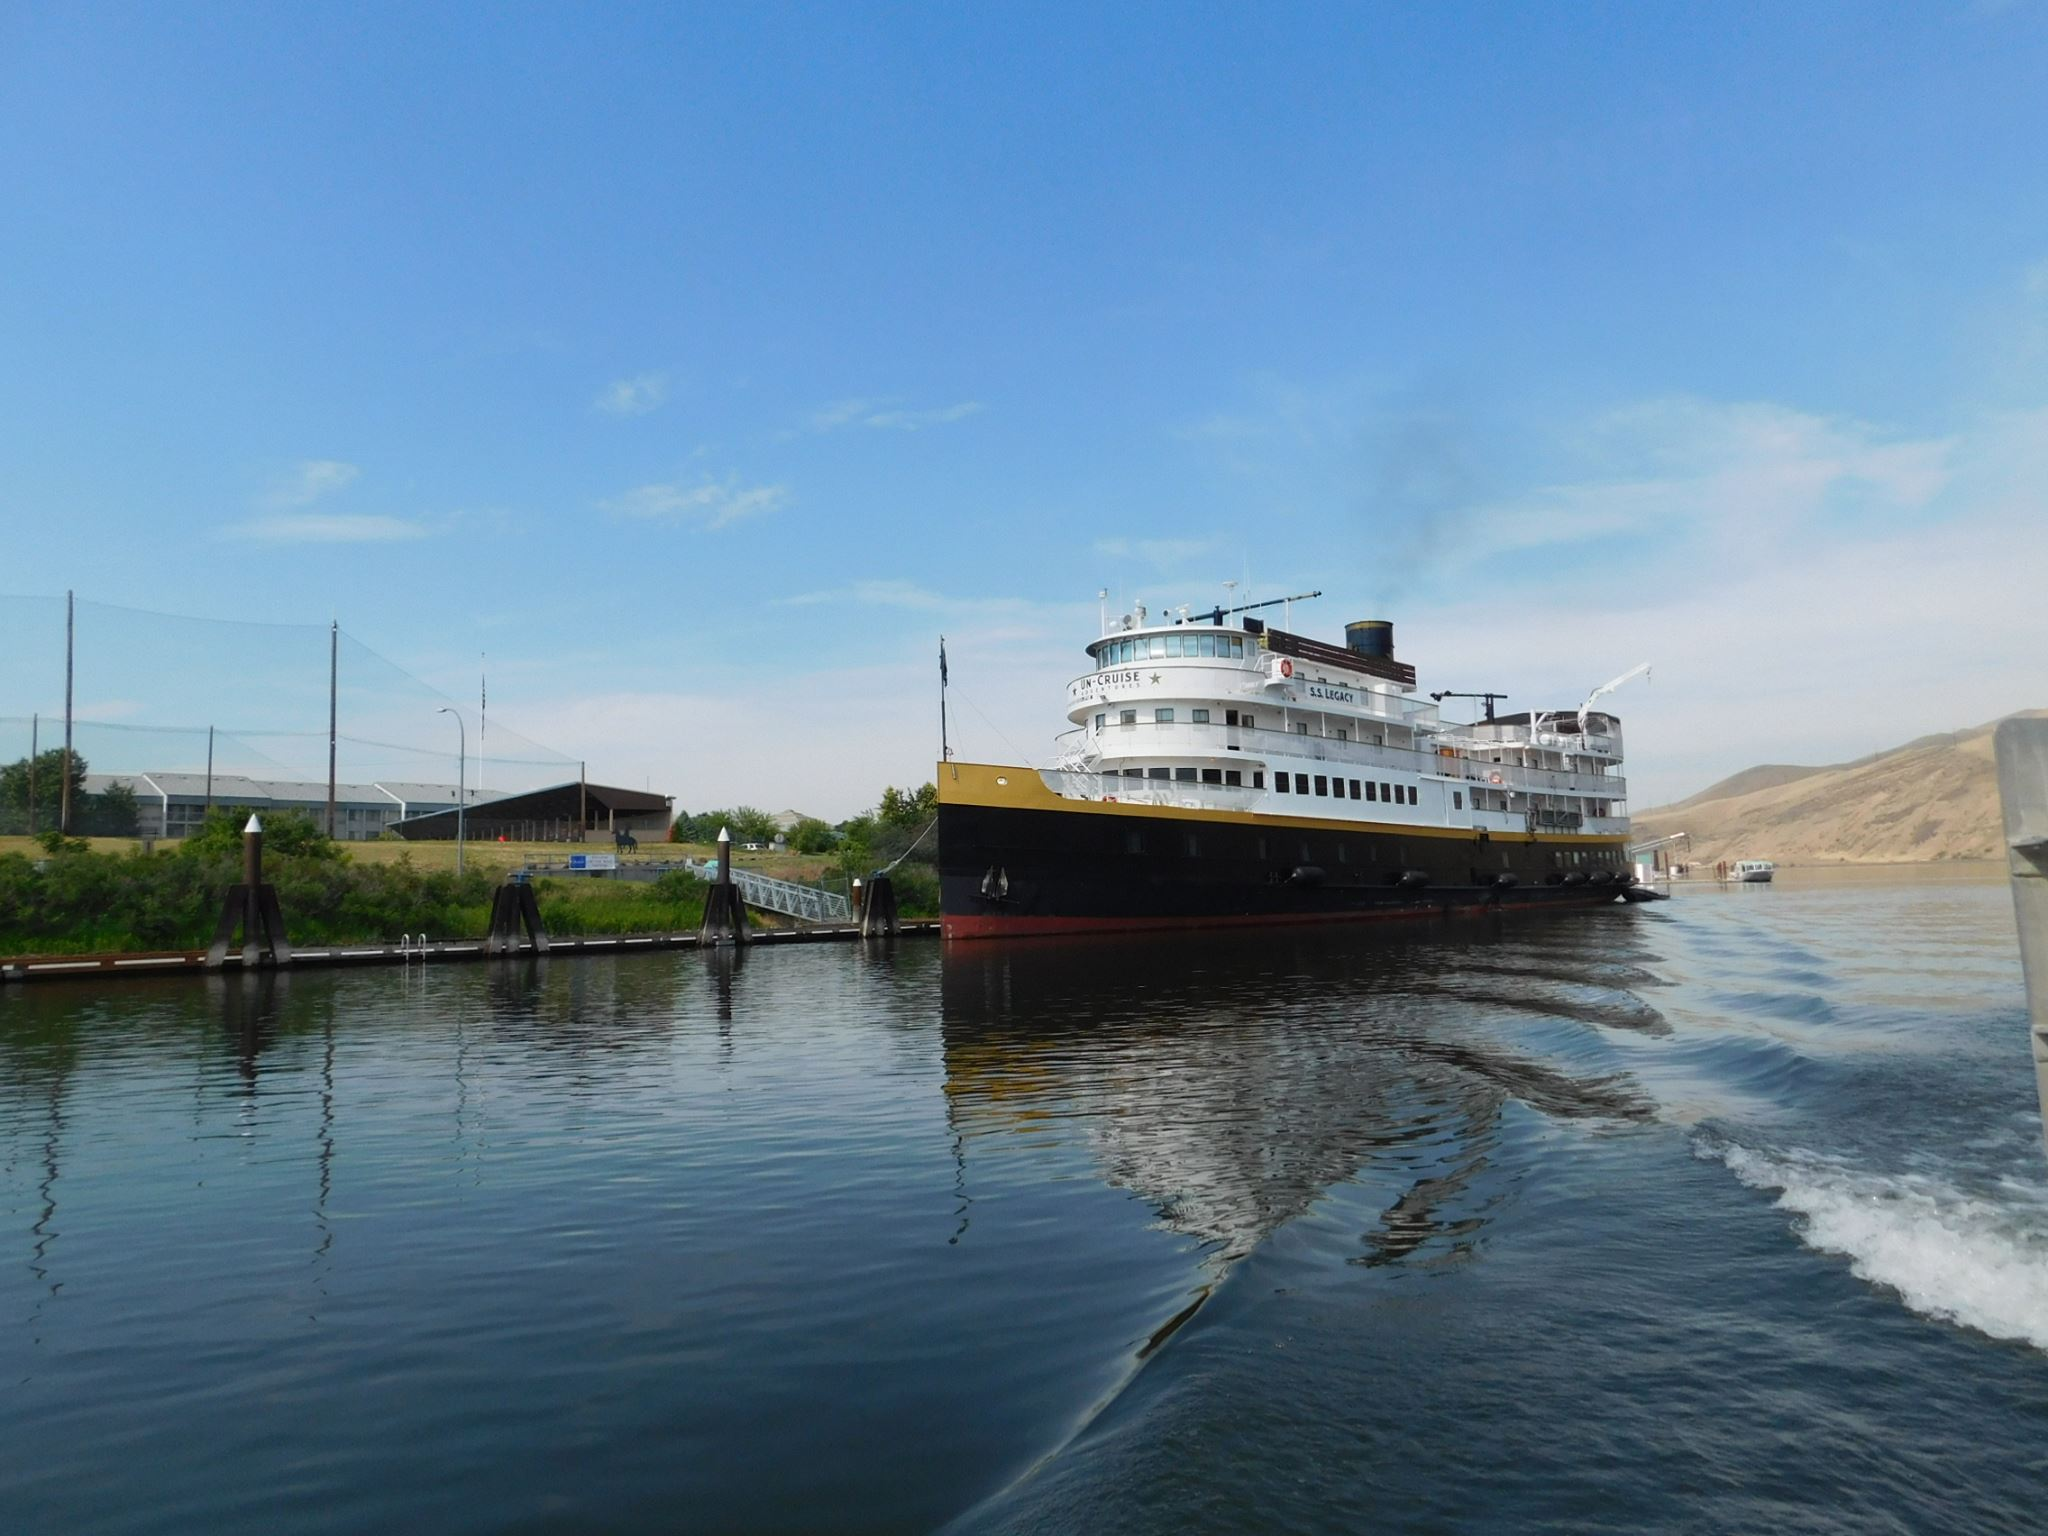 S.S. Legacy, the ship servicing Alaska Glacier Cruise—Ultimate Expedition (S.S. Legacy)